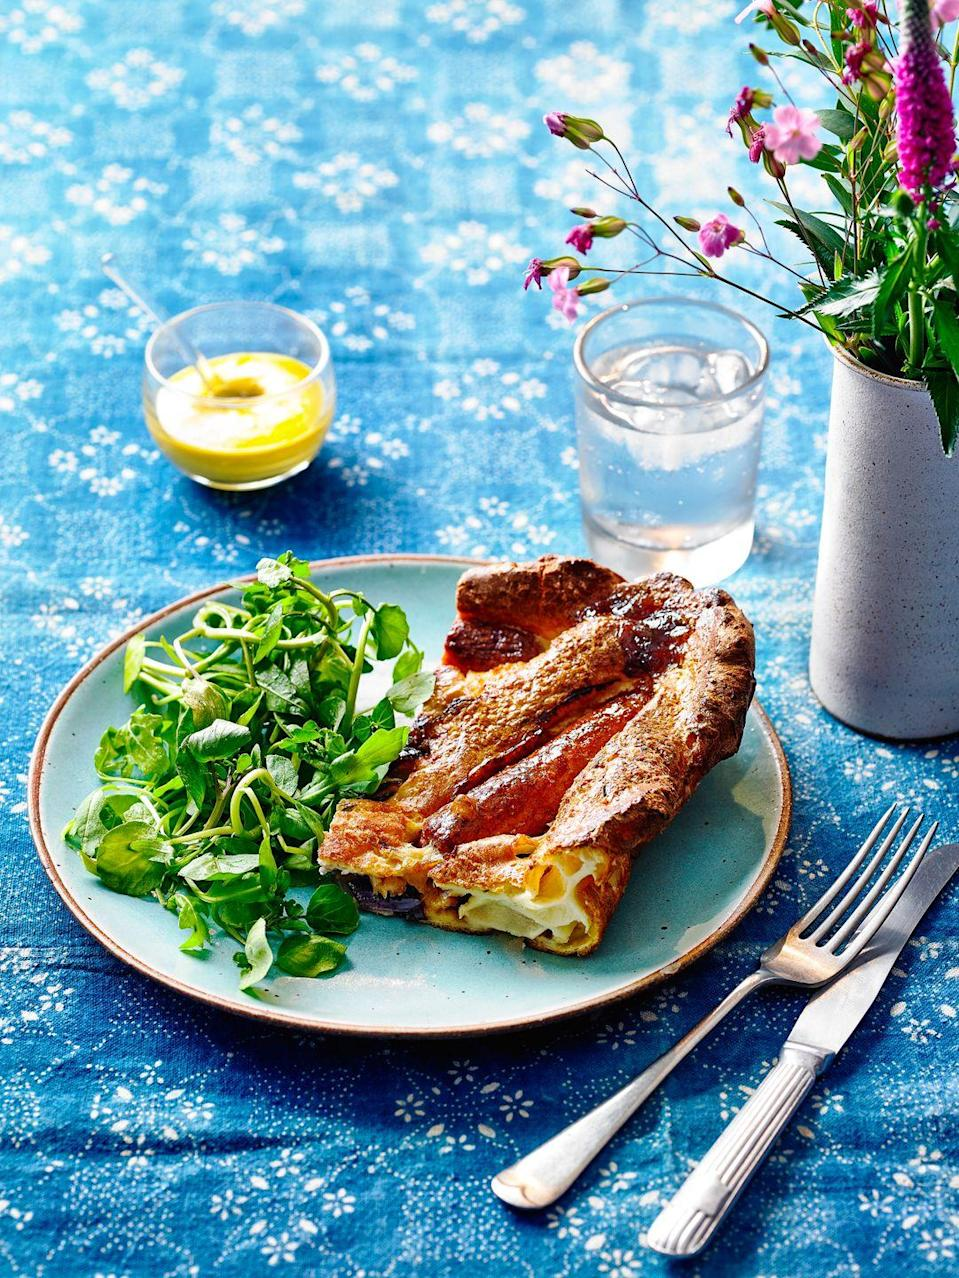 """<p>The trick to a good toad in the hole is letting the batter rest – and choosing the best sausages for you, whether meaty or veggie.<br></p><p><strong><a href=""""https://www.goodhousekeeping.com/uk/food/recipes/a29245476/veggie-toad-in-the-hole/"""" rel=""""nofollow noopener"""" target=""""_blank"""" data-ylk=""""slk:Recipe: Veggie Toad in the Hole Traybake"""" class=""""link rapid-noclick-resp"""">Recipe: Veggie Toad in the Hole Traybake</a></strong></p>"""